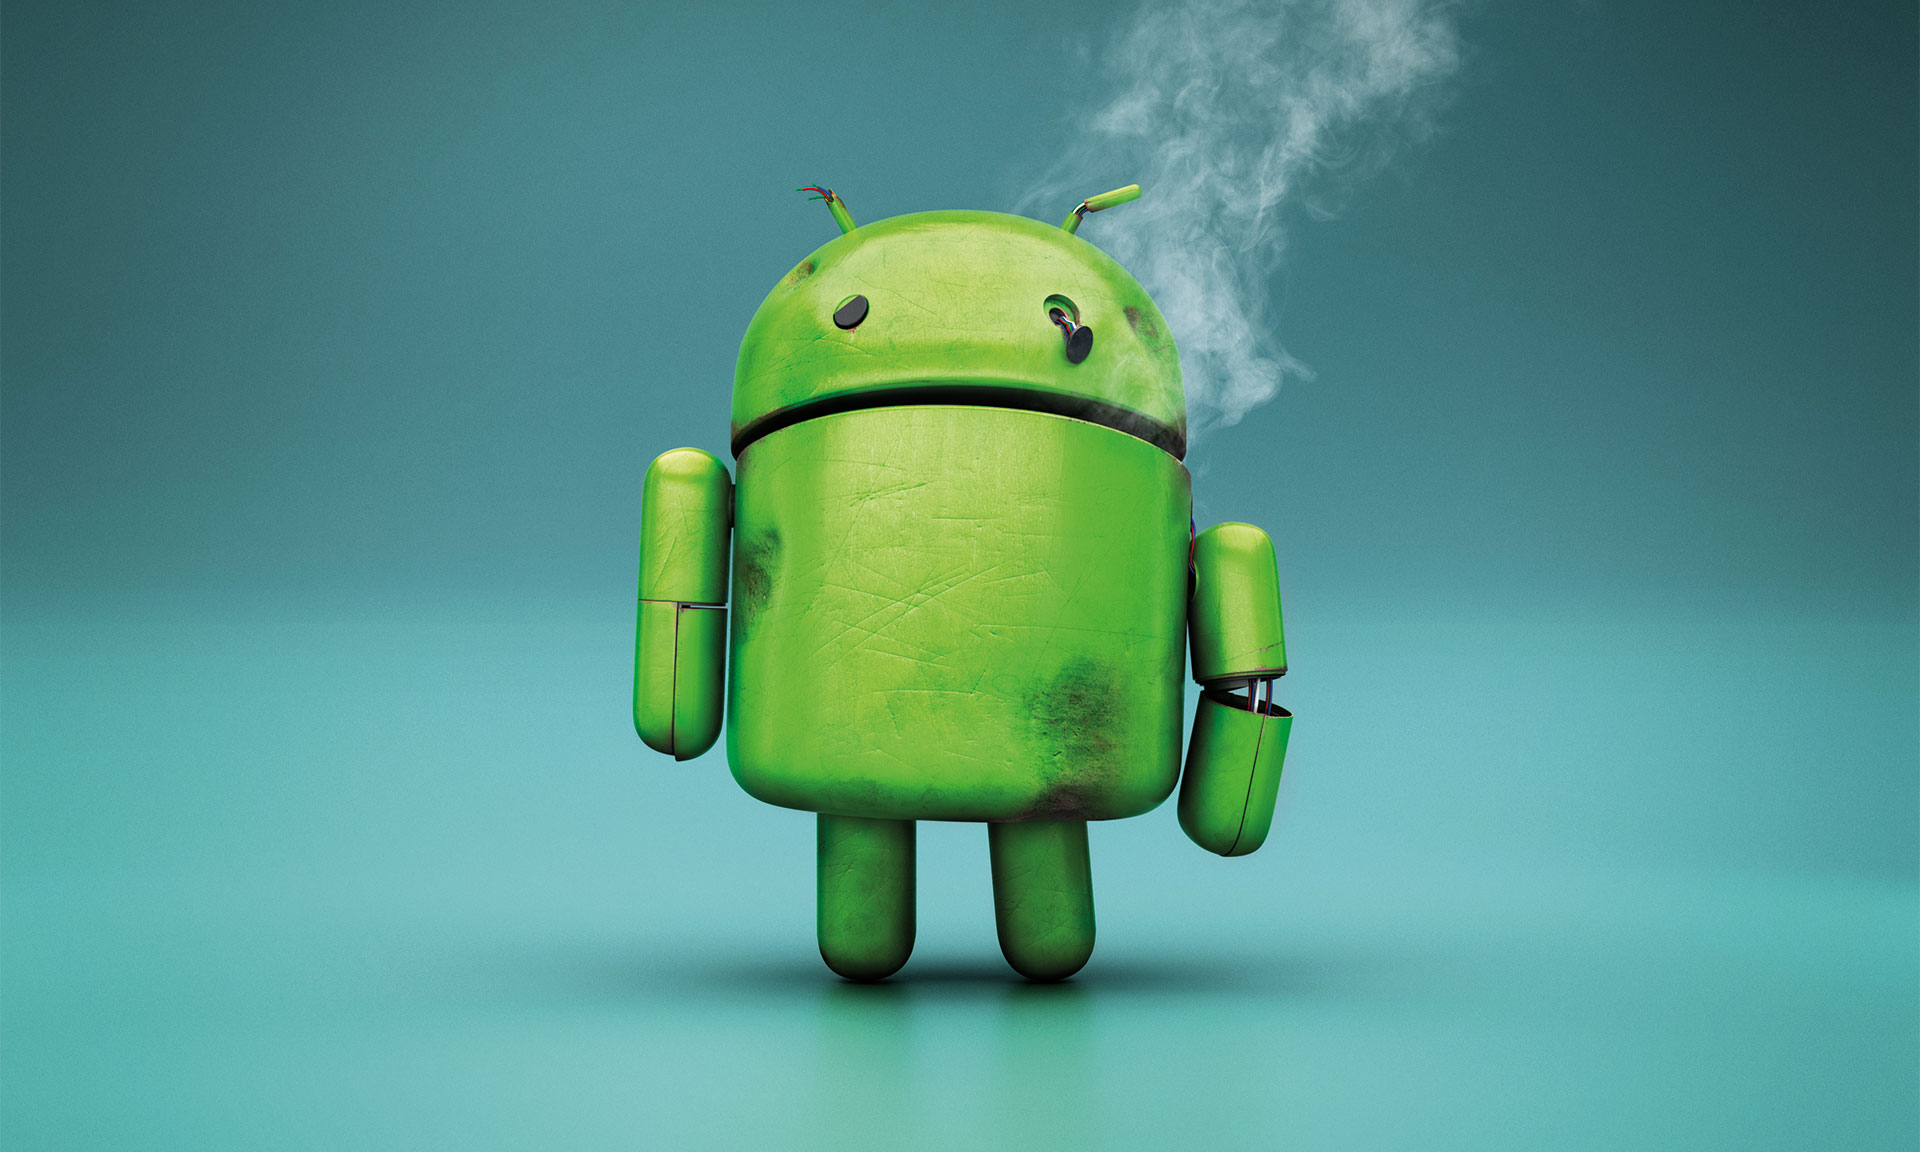 Is it possible to install an iOS on an Android